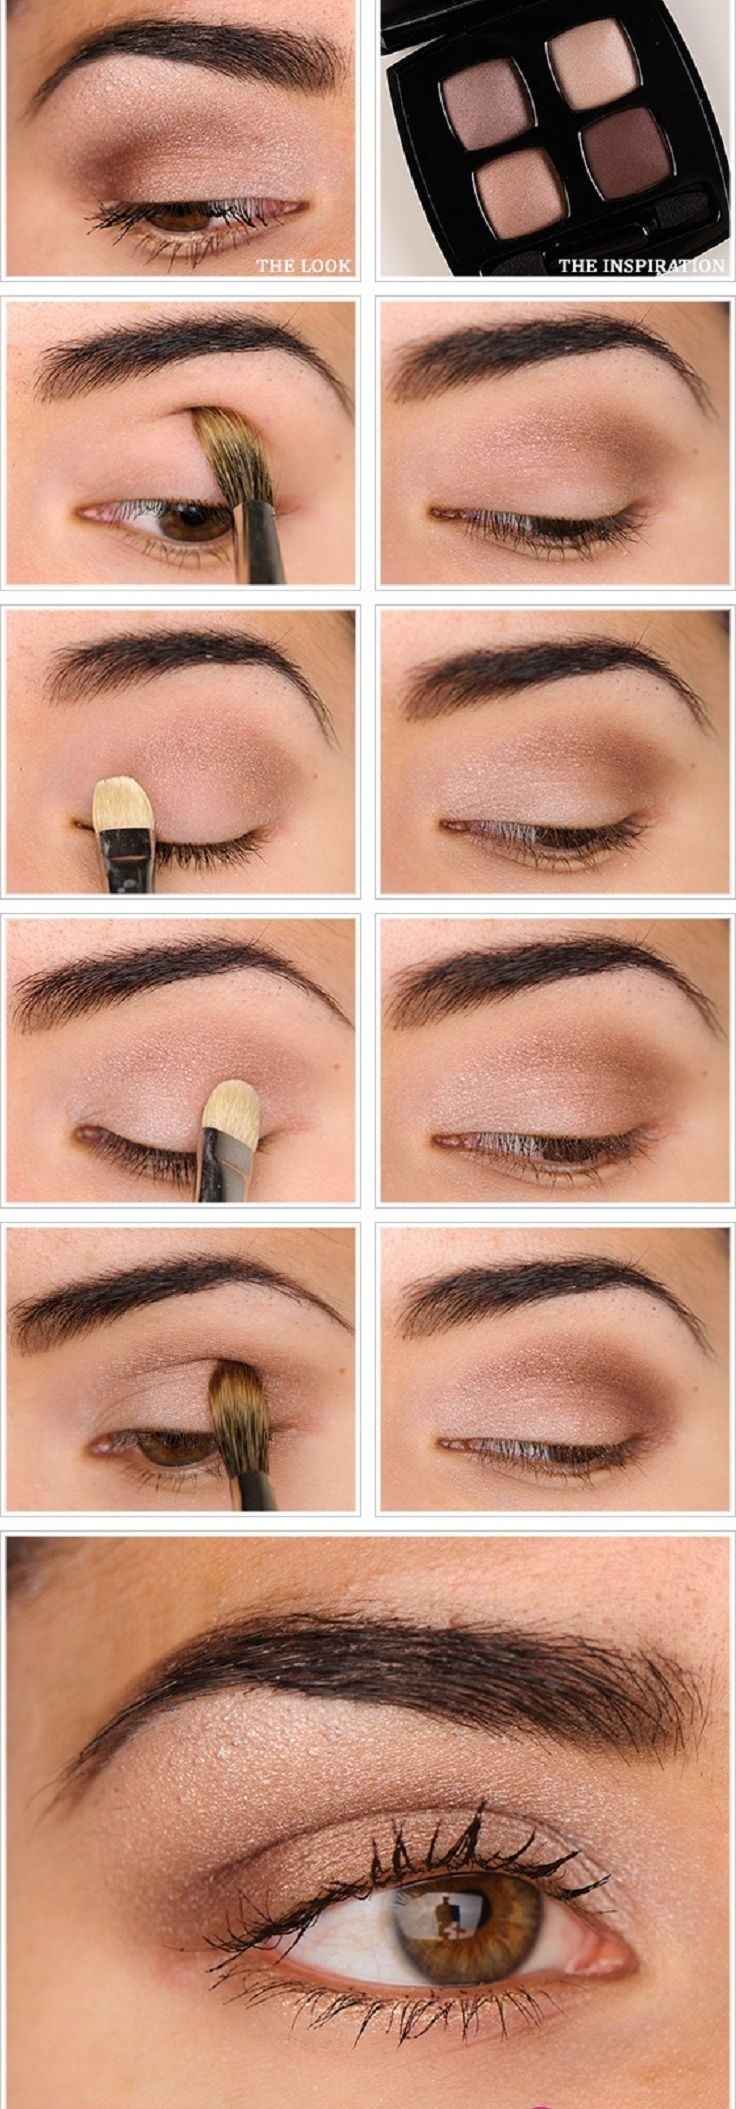 See here the appropriate makeup for school httpmymakeupideas see here the appropriate makeup for school httpmymakeupideas baditri Images